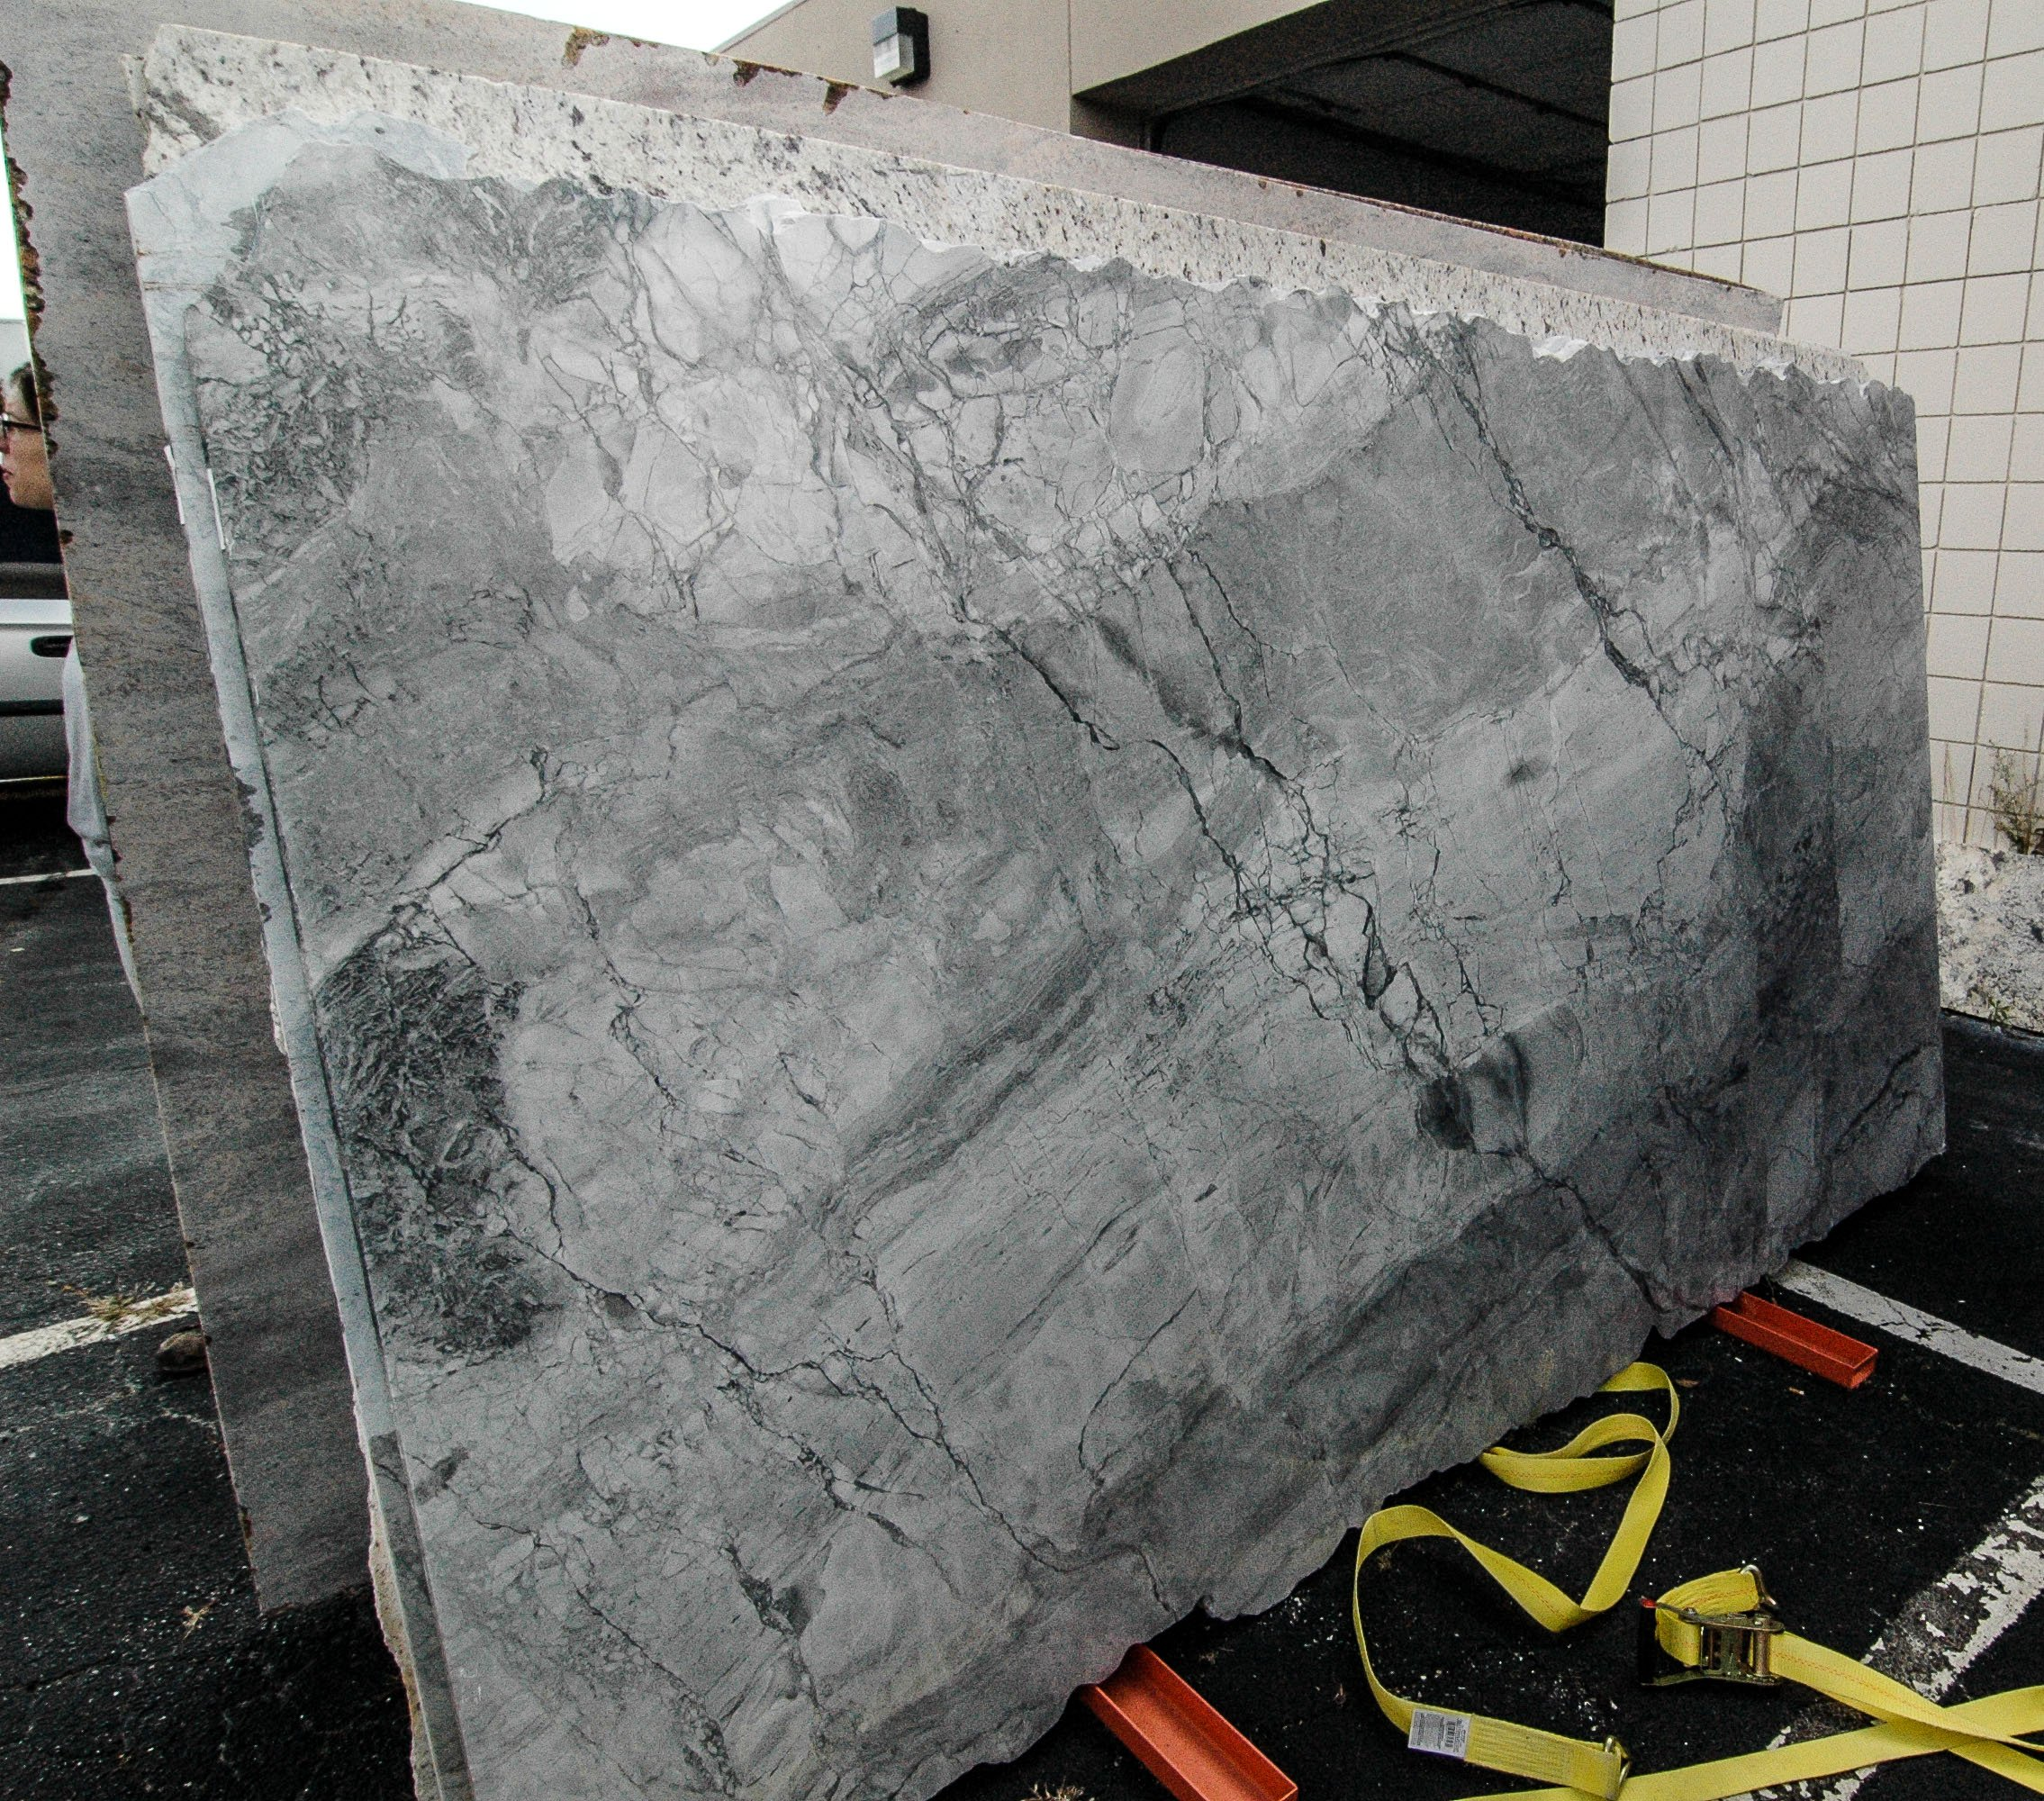 white granite delivered today to opb